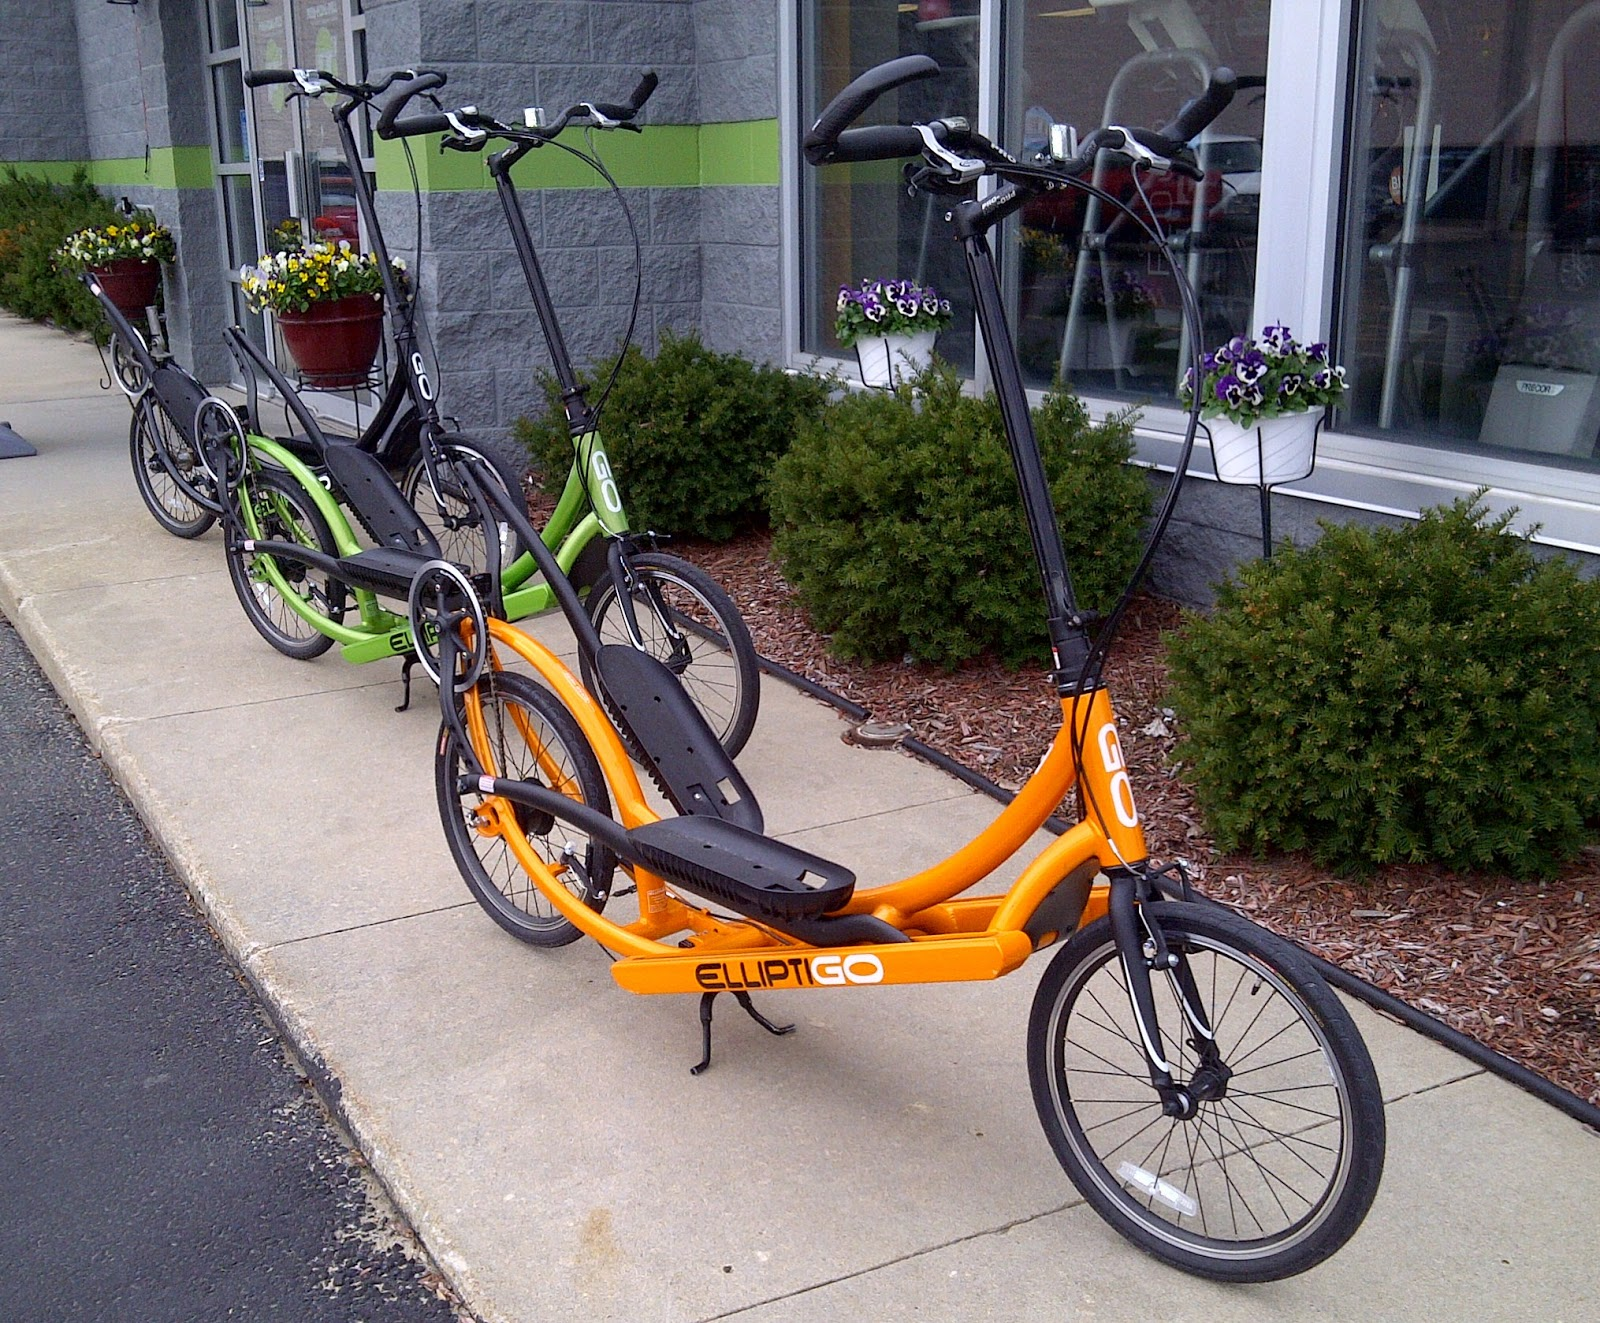 How To Find A Used Elliptigo For Sale Penny Pincher Journal